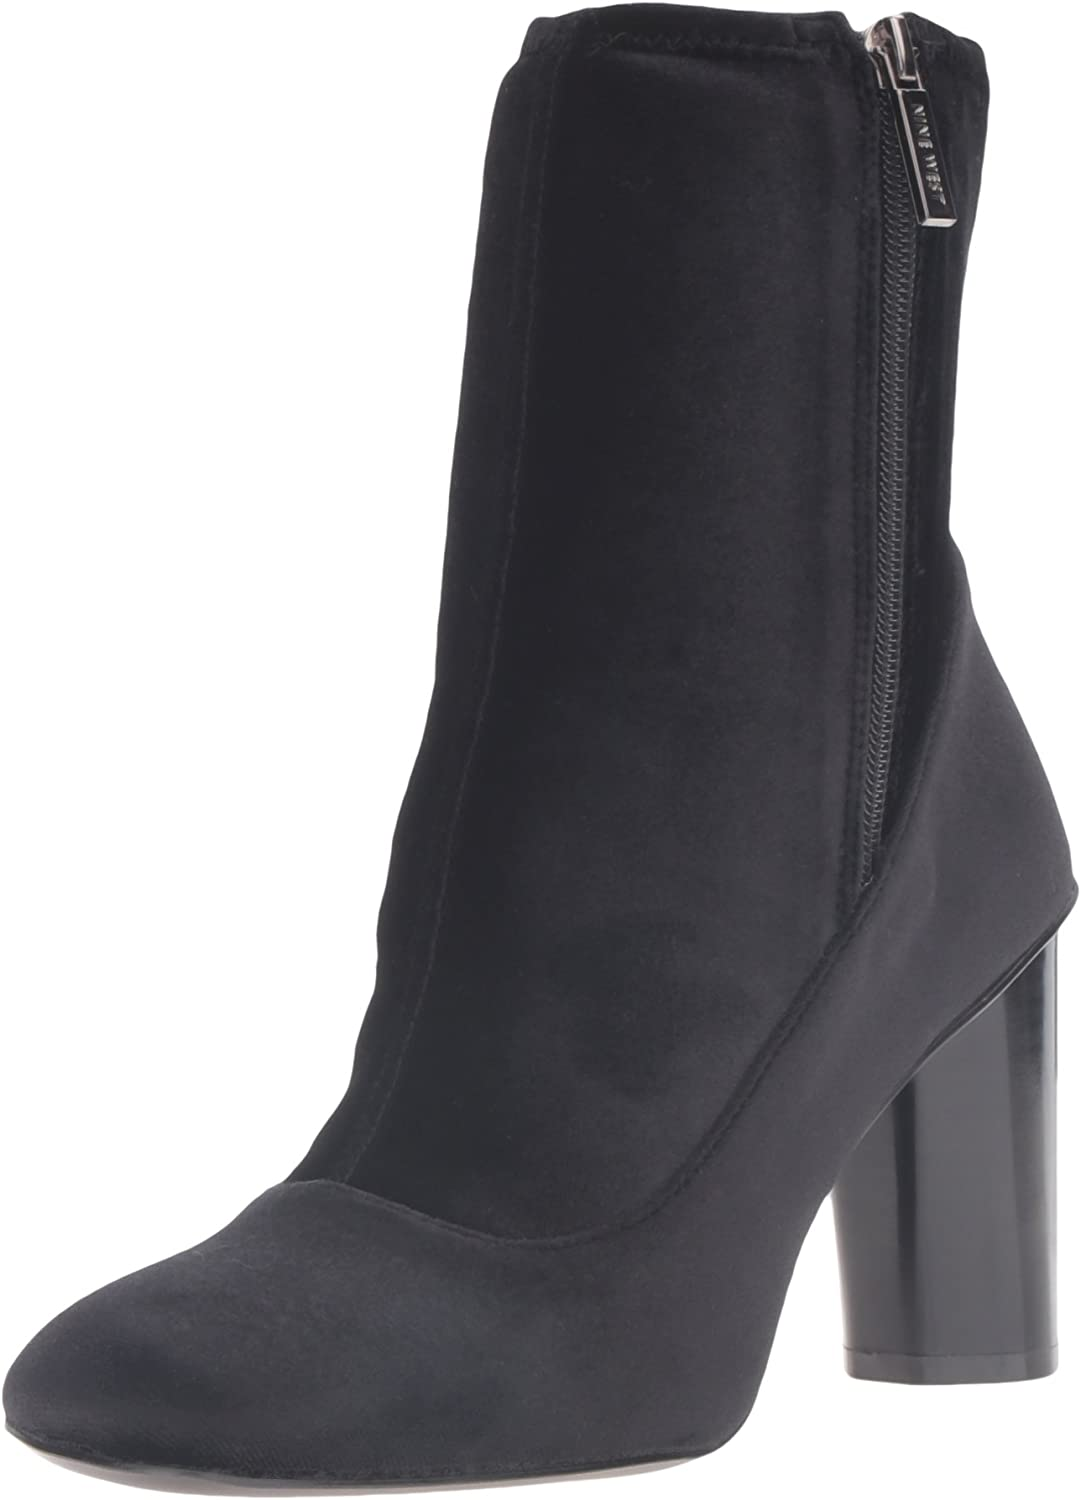 Nine West Womens Valetta Fabric Ankle Bootie